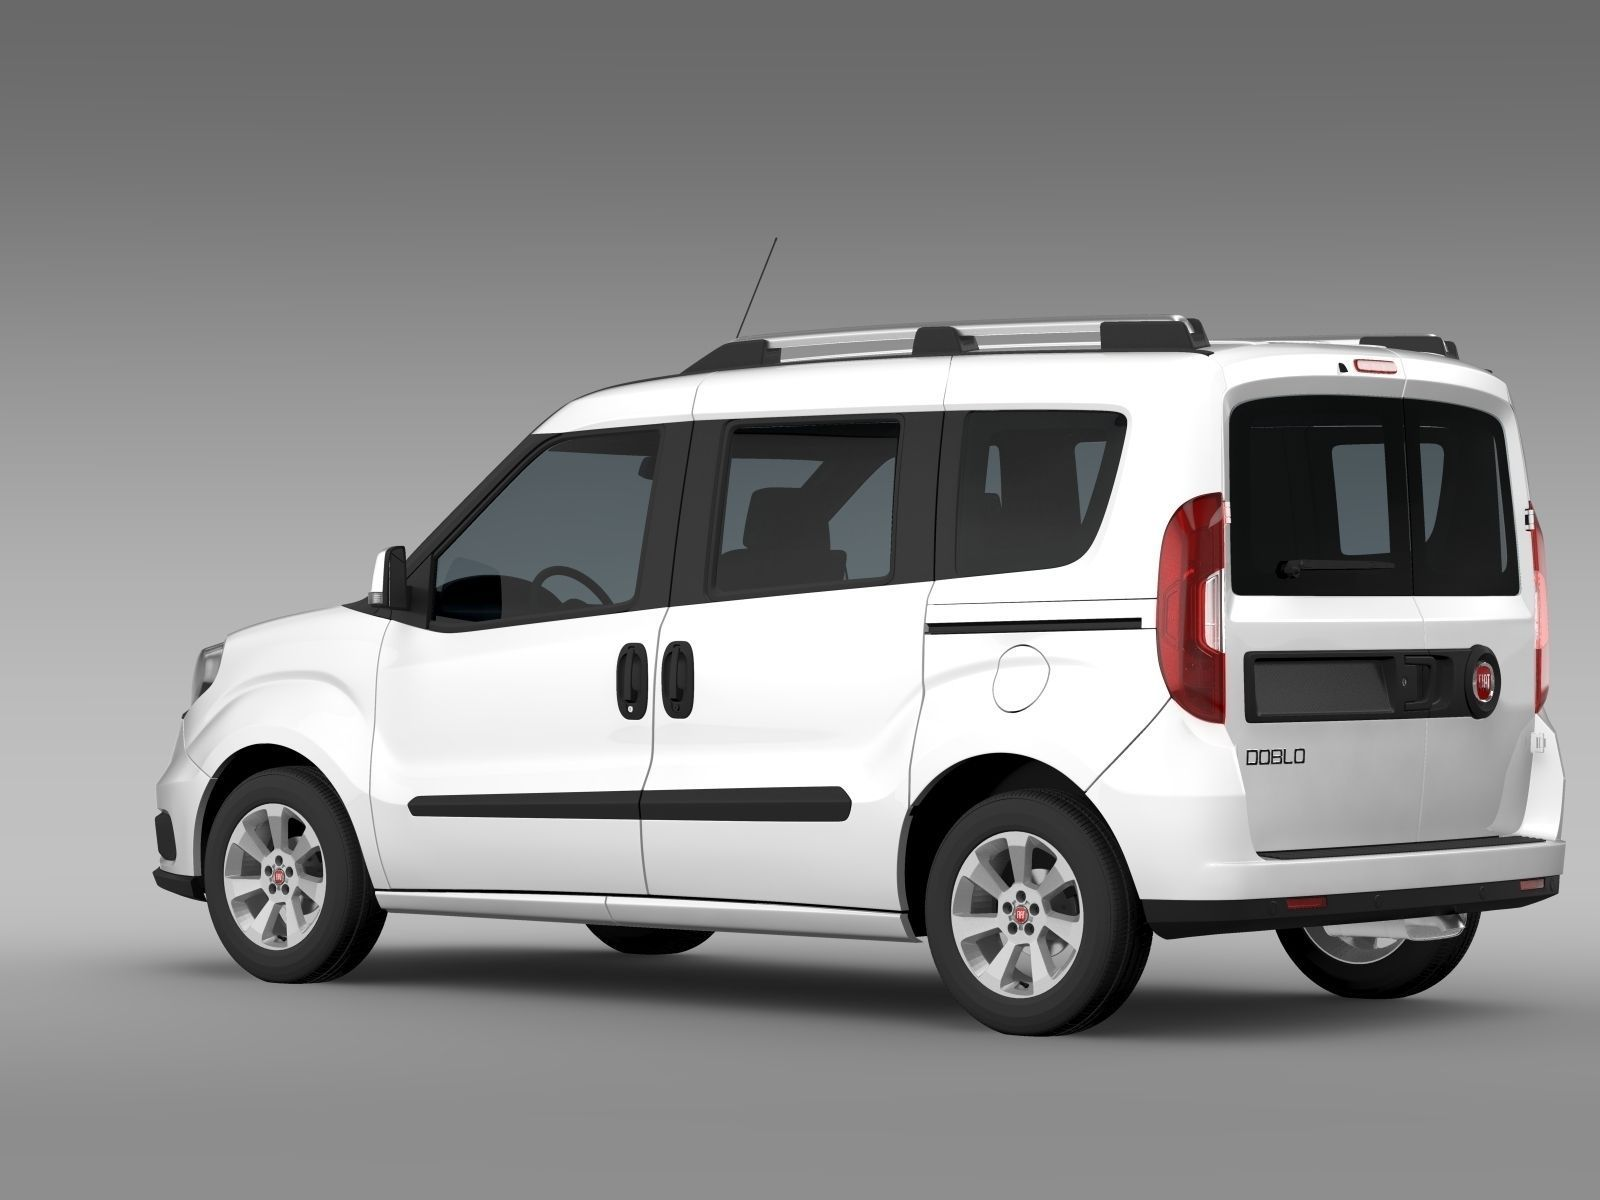 fiat doblo 263 uk spec 2015 3d model max obj 3ds fbx c4d lwo lw lws. Black Bedroom Furniture Sets. Home Design Ideas